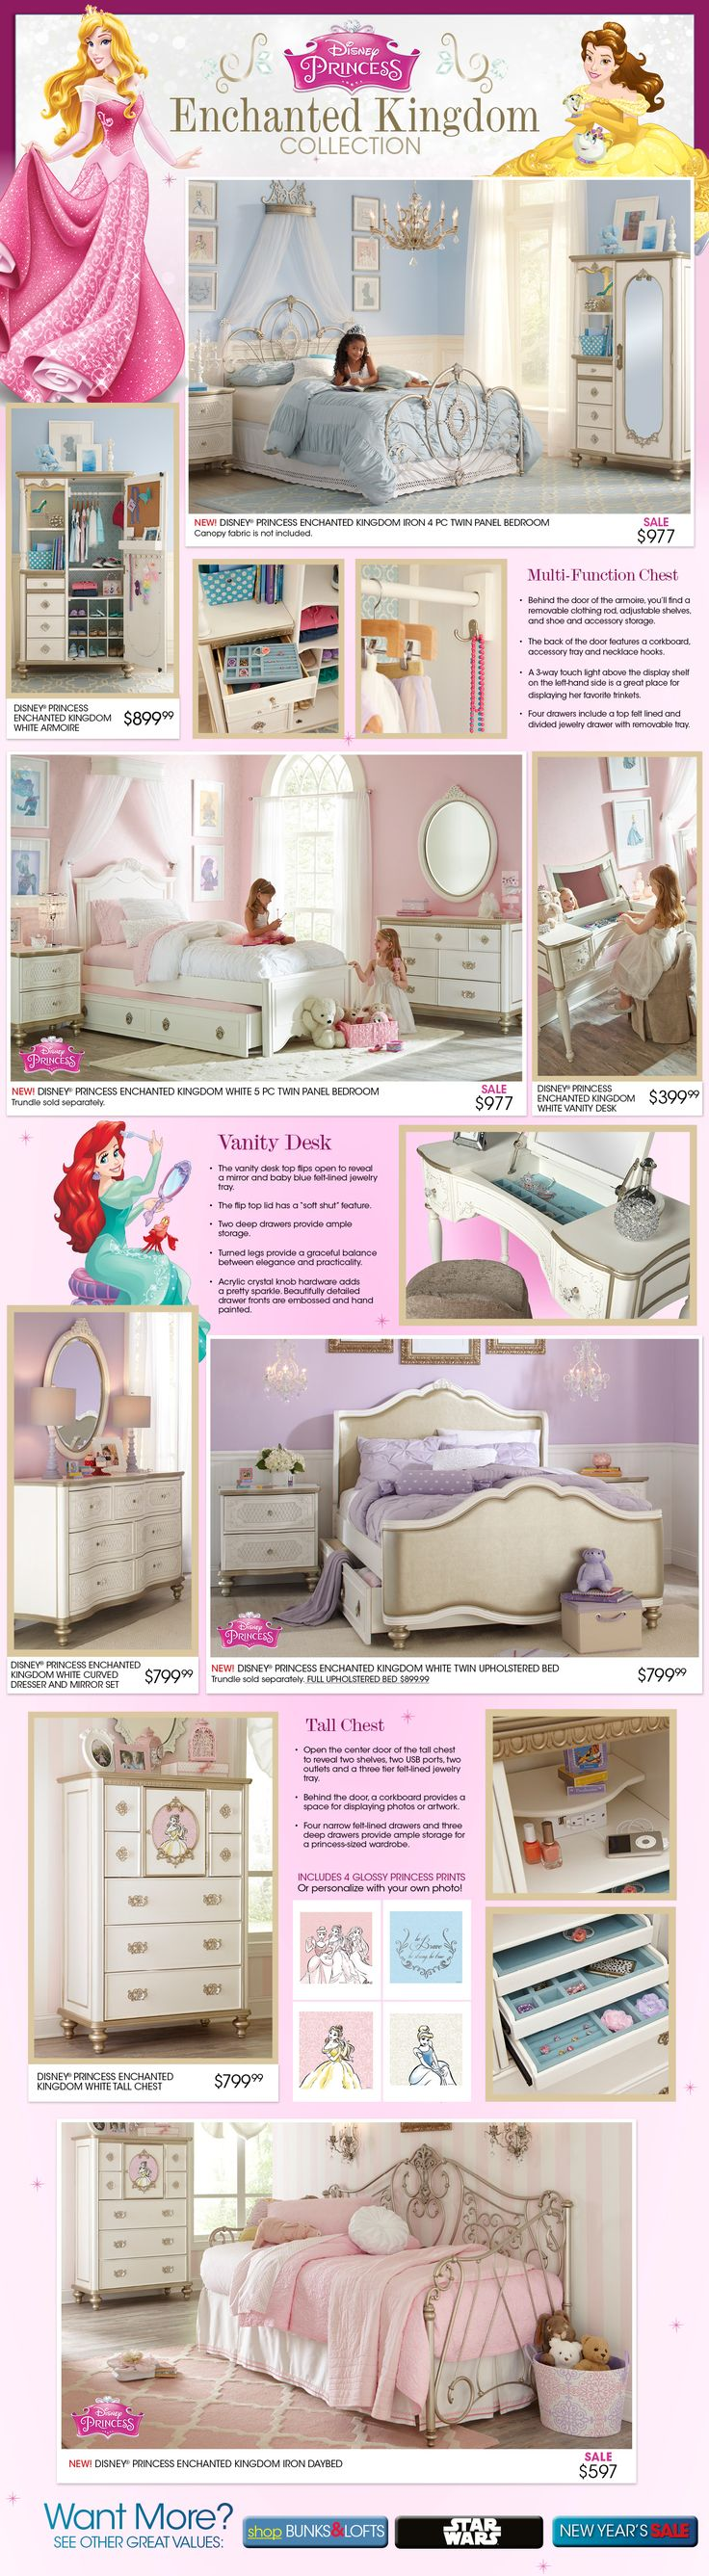 Kids Bedroom Furniture Packages 17 Best Ideas About Kids Bedroom Sets On Pinterest Girls Bedroom